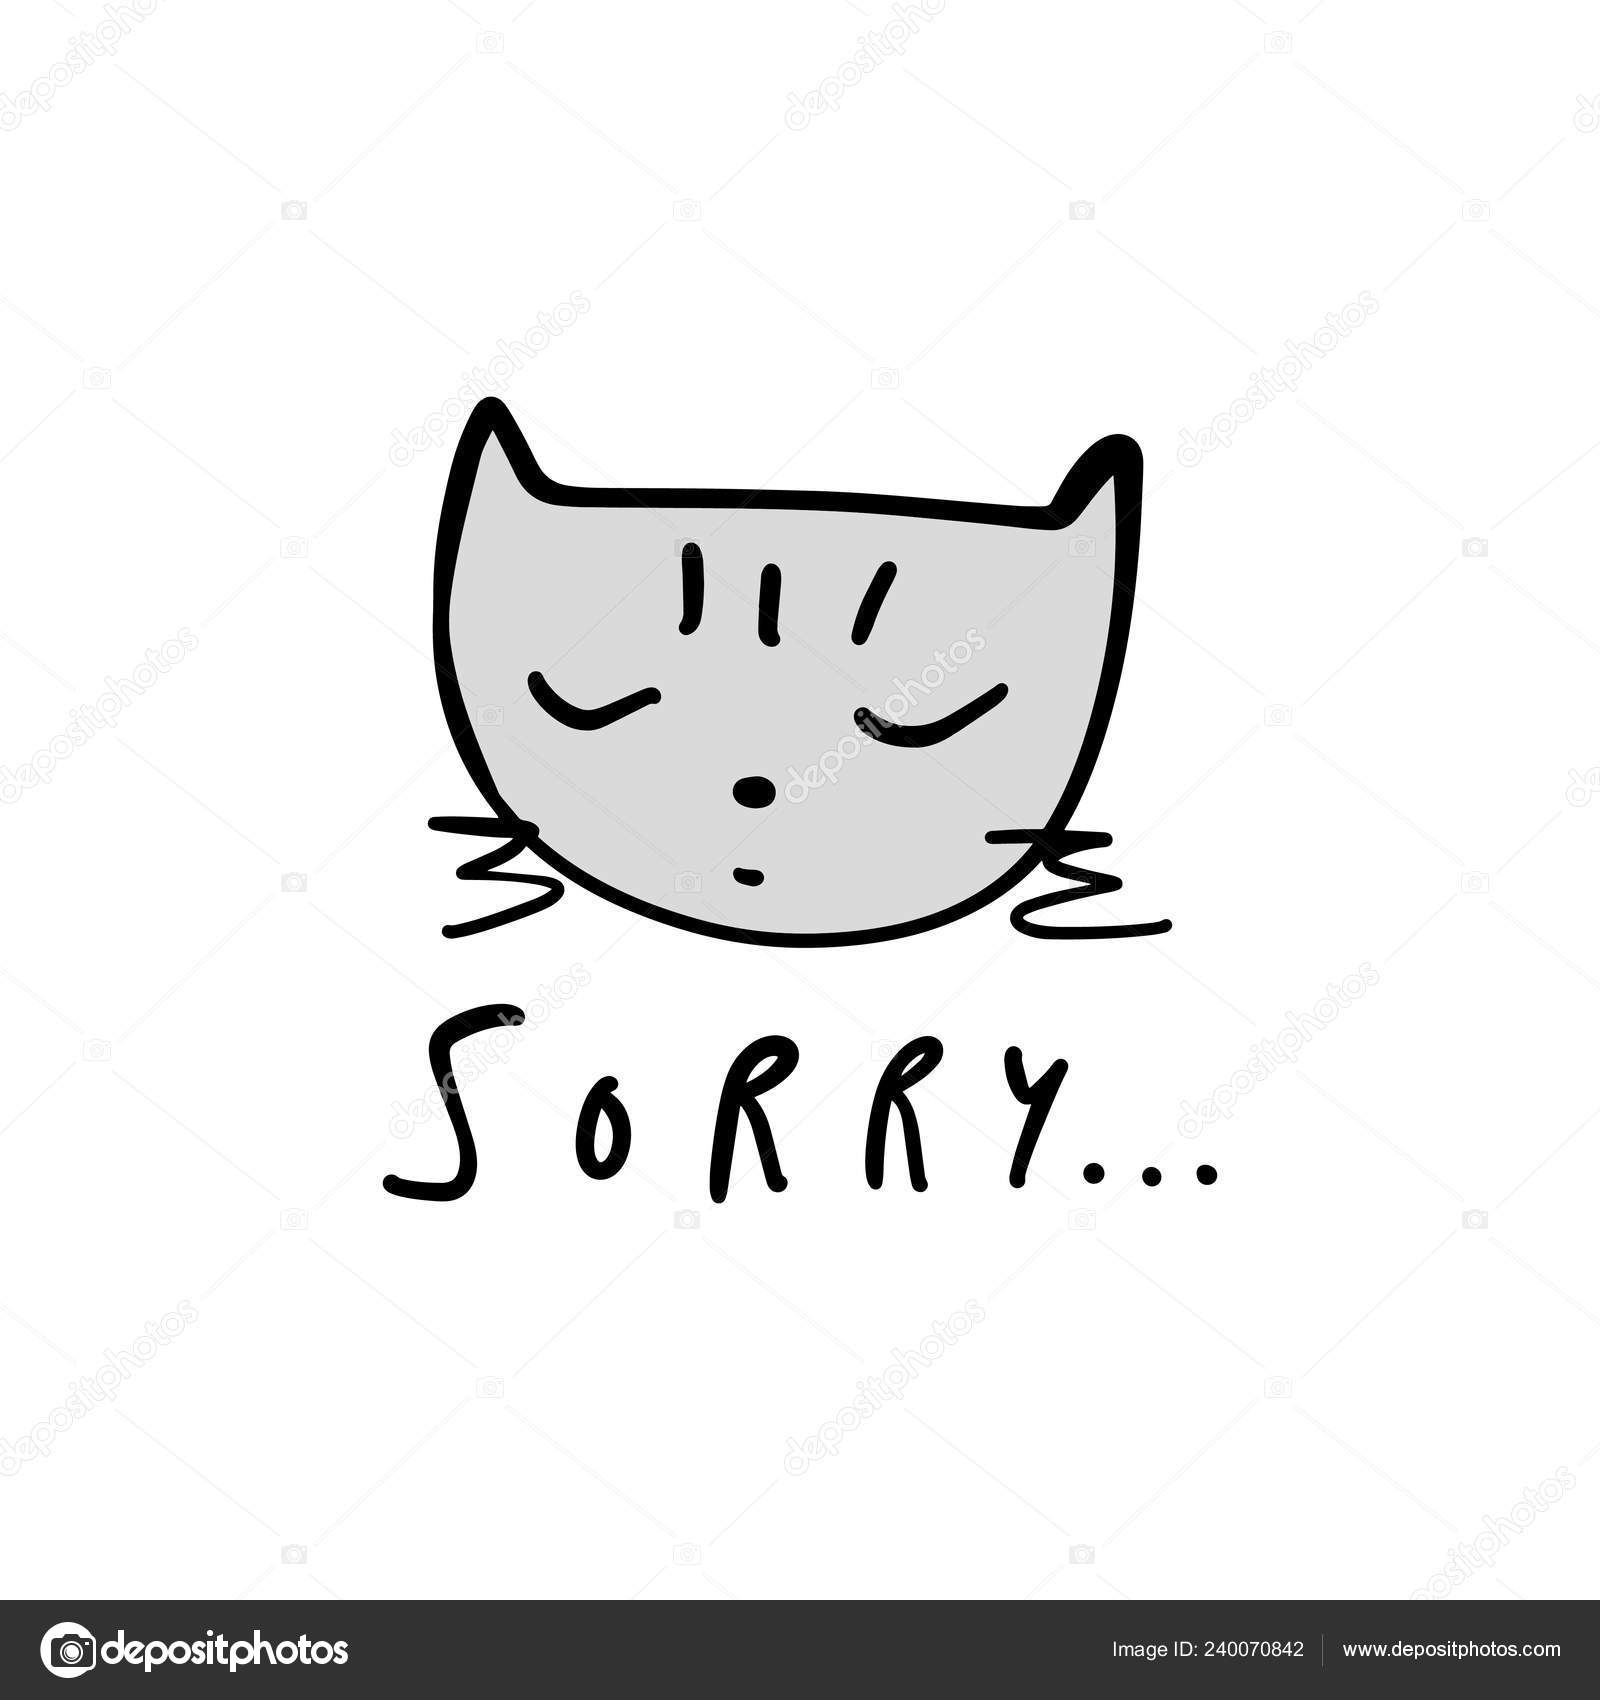 Clipart: sorry cute.